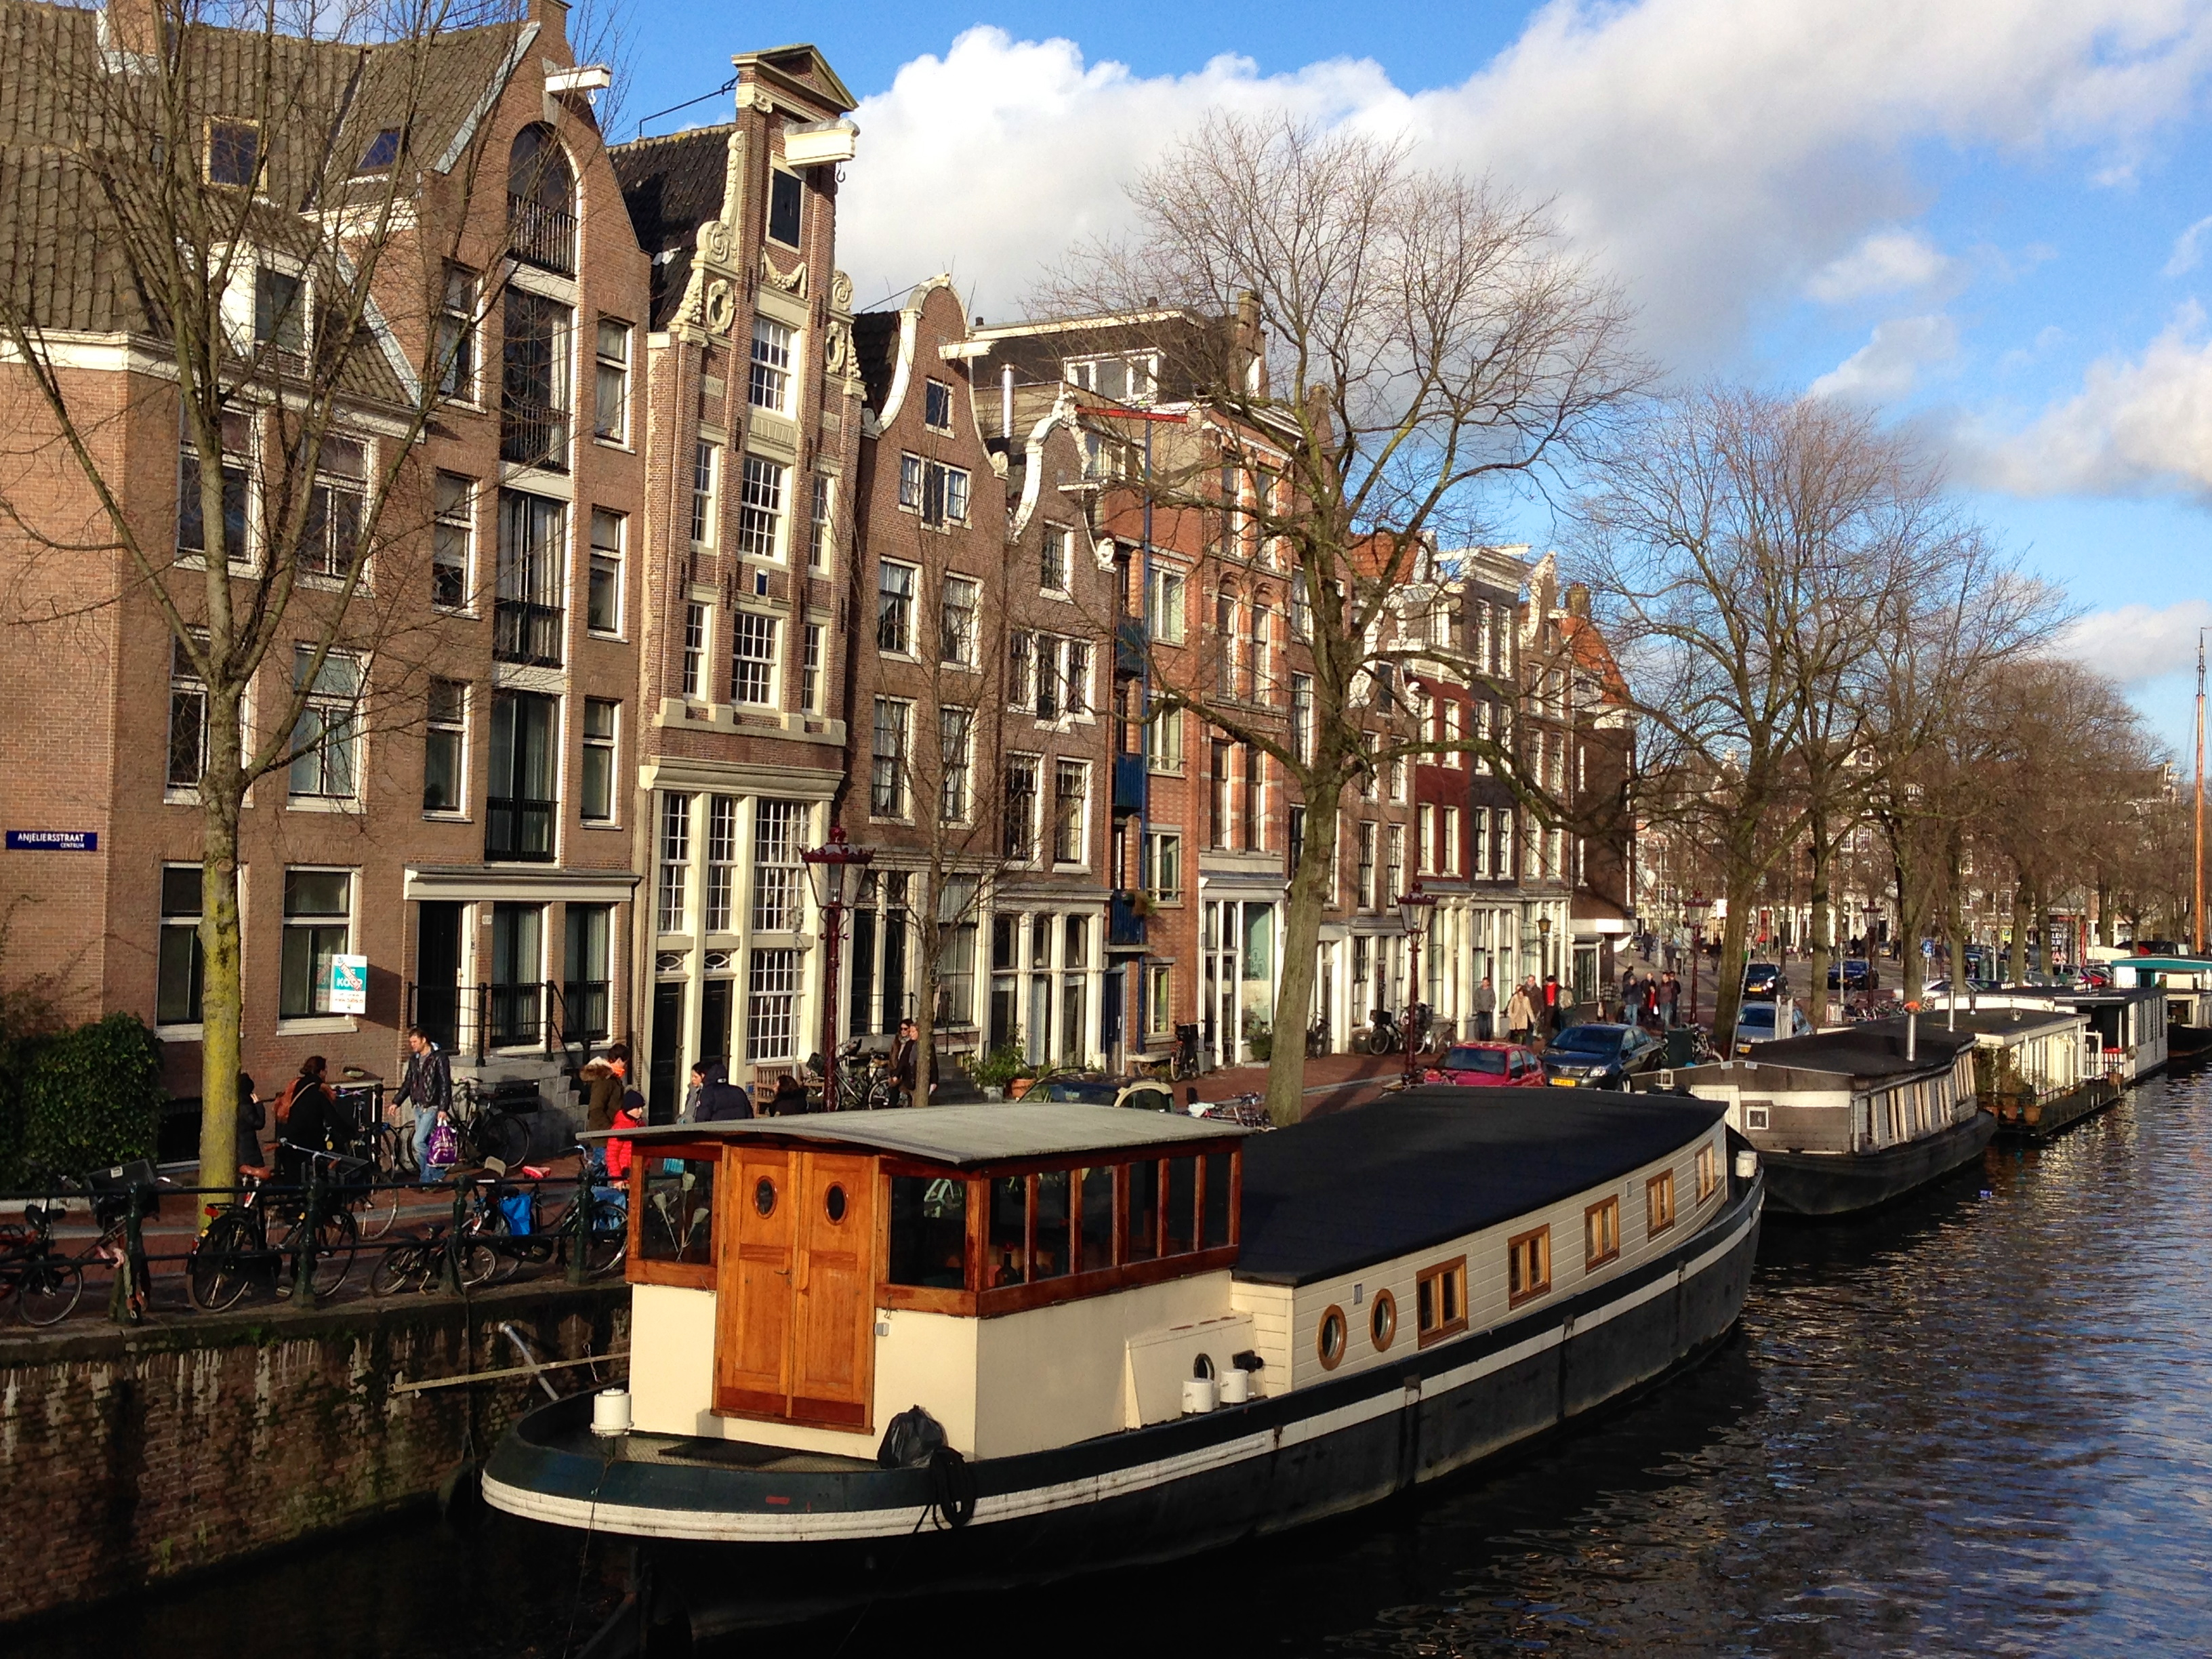 Amsterdam Canal and Houseboats December 2013